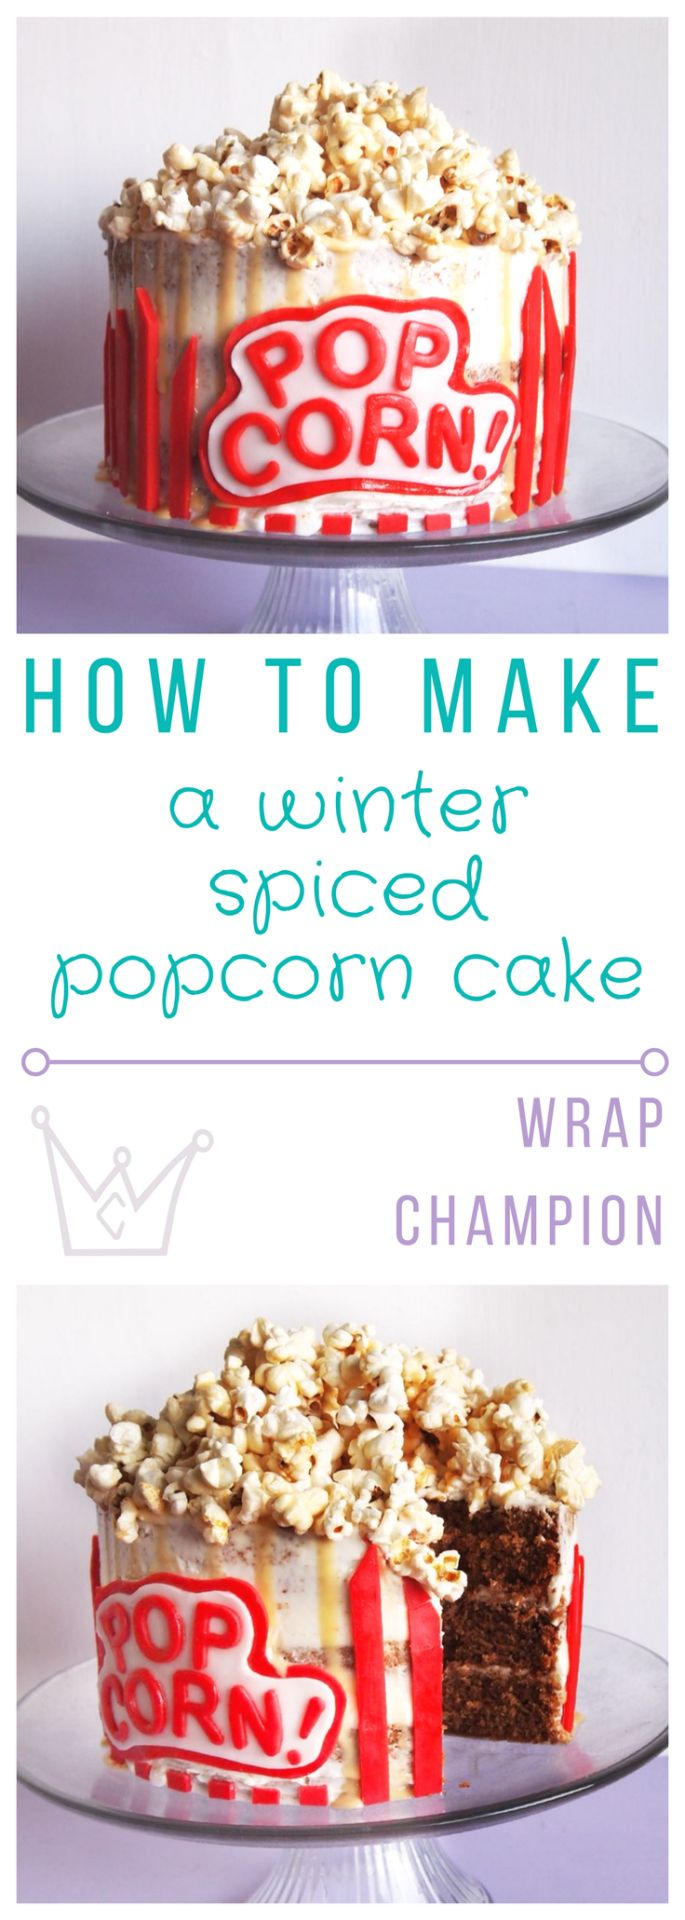 How to make a winter spiced popcorn cake with homemade caramel drip recipe and fondant decorations